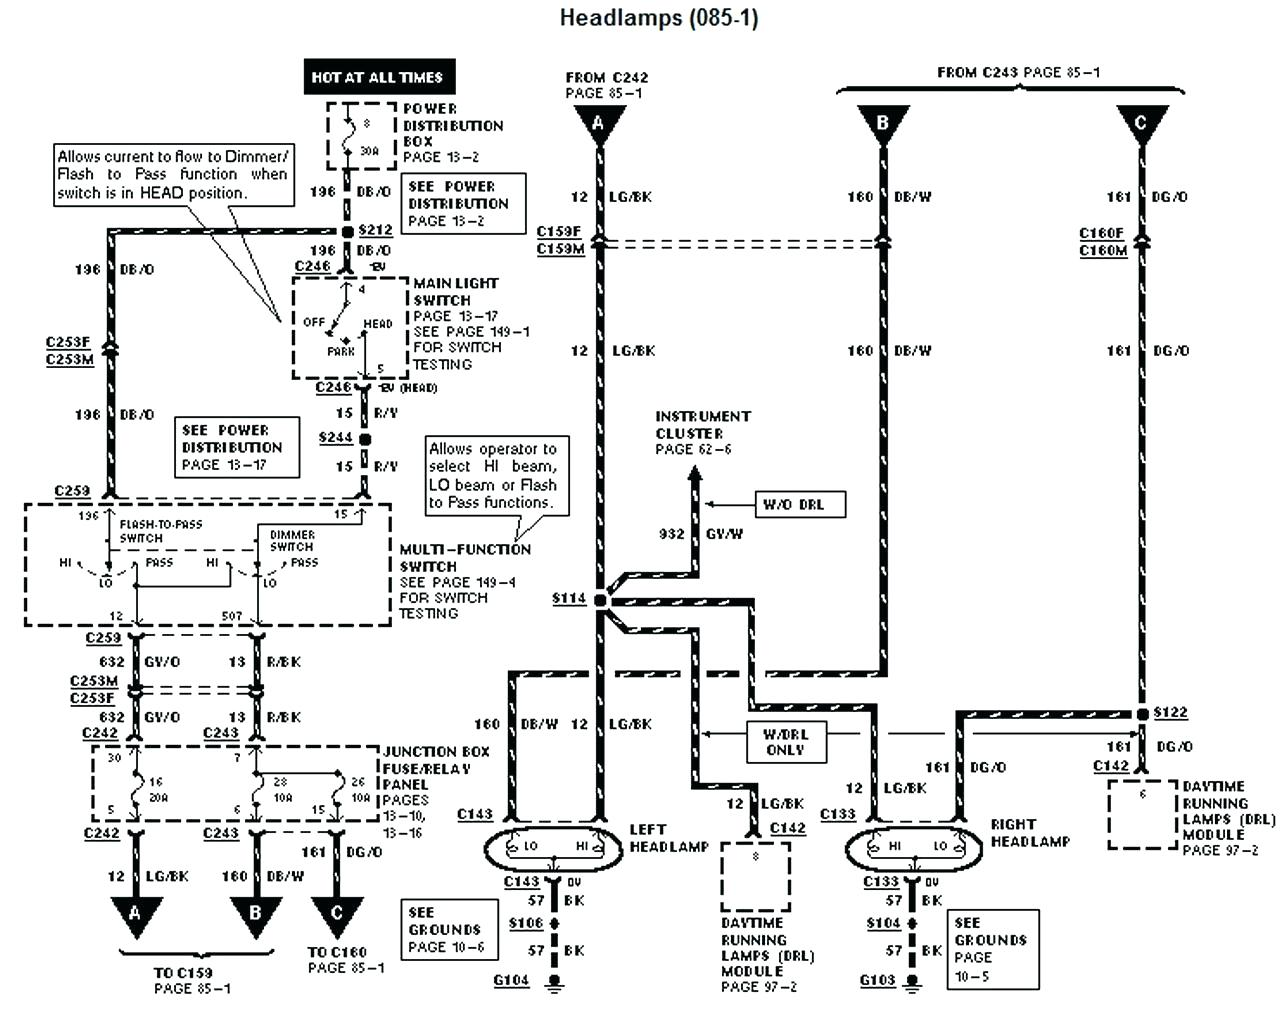 1280x1021 wiring diagram software open source ford 5 4 engine parts for